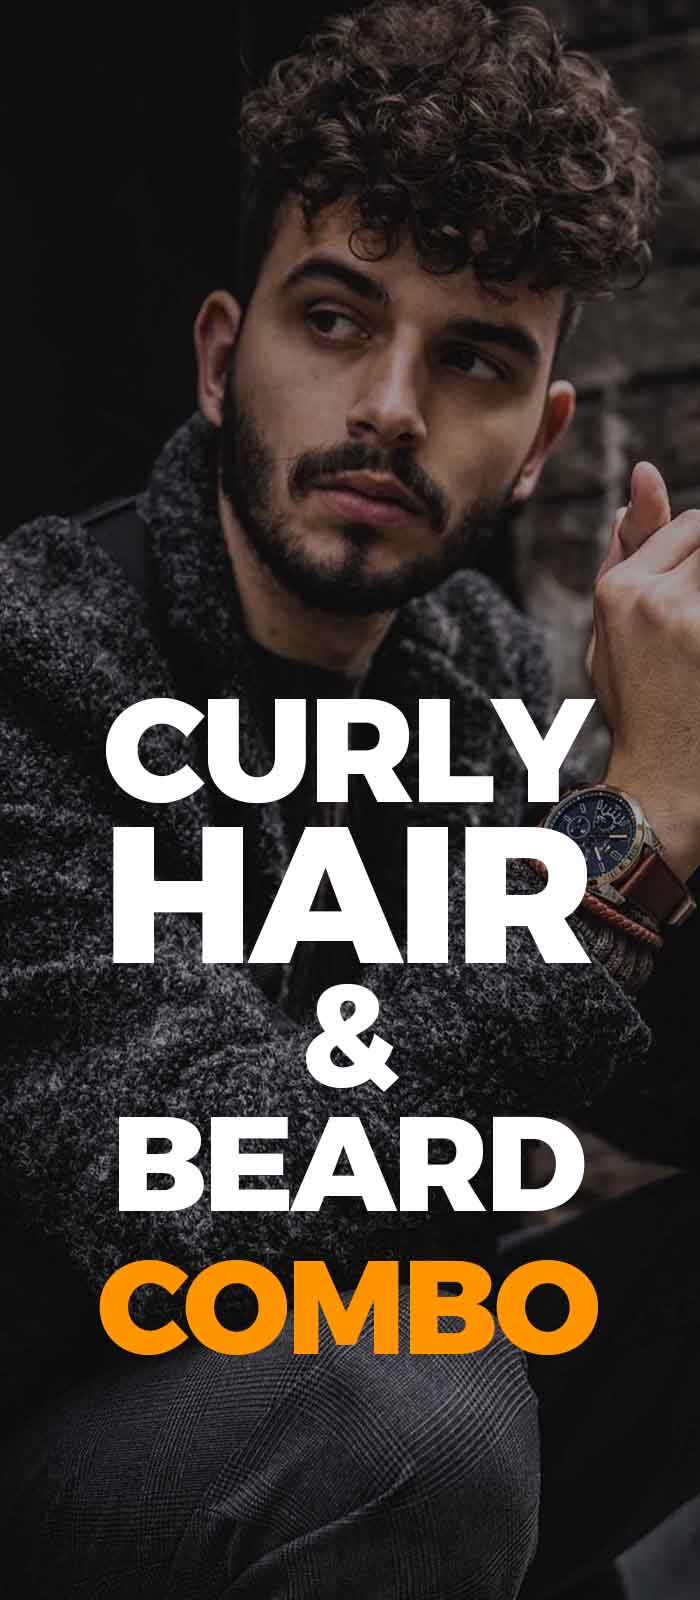 Short Beard with Curly hair lookfor men to try!